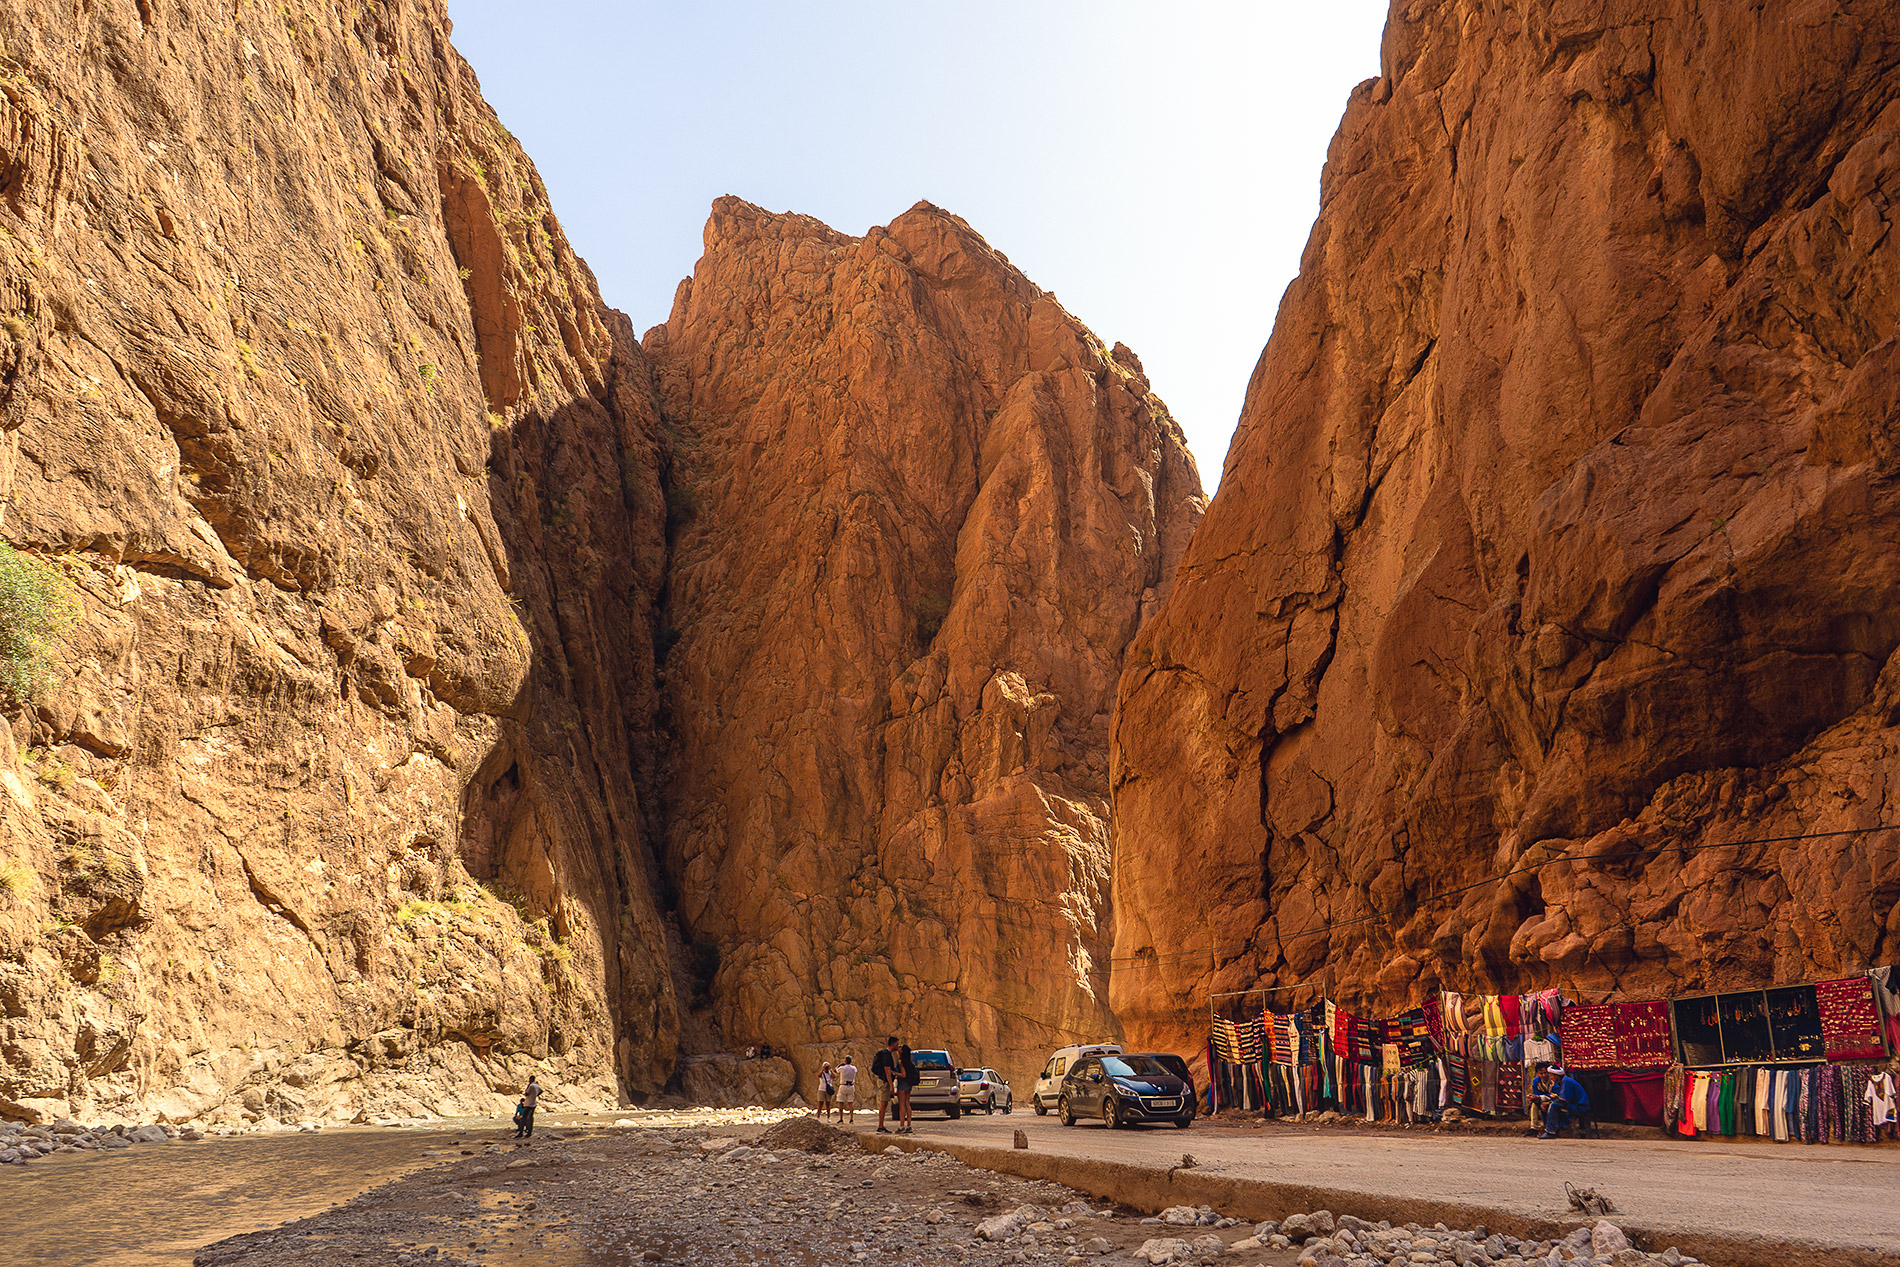 The incredible canyons of Morocco during our desert tour